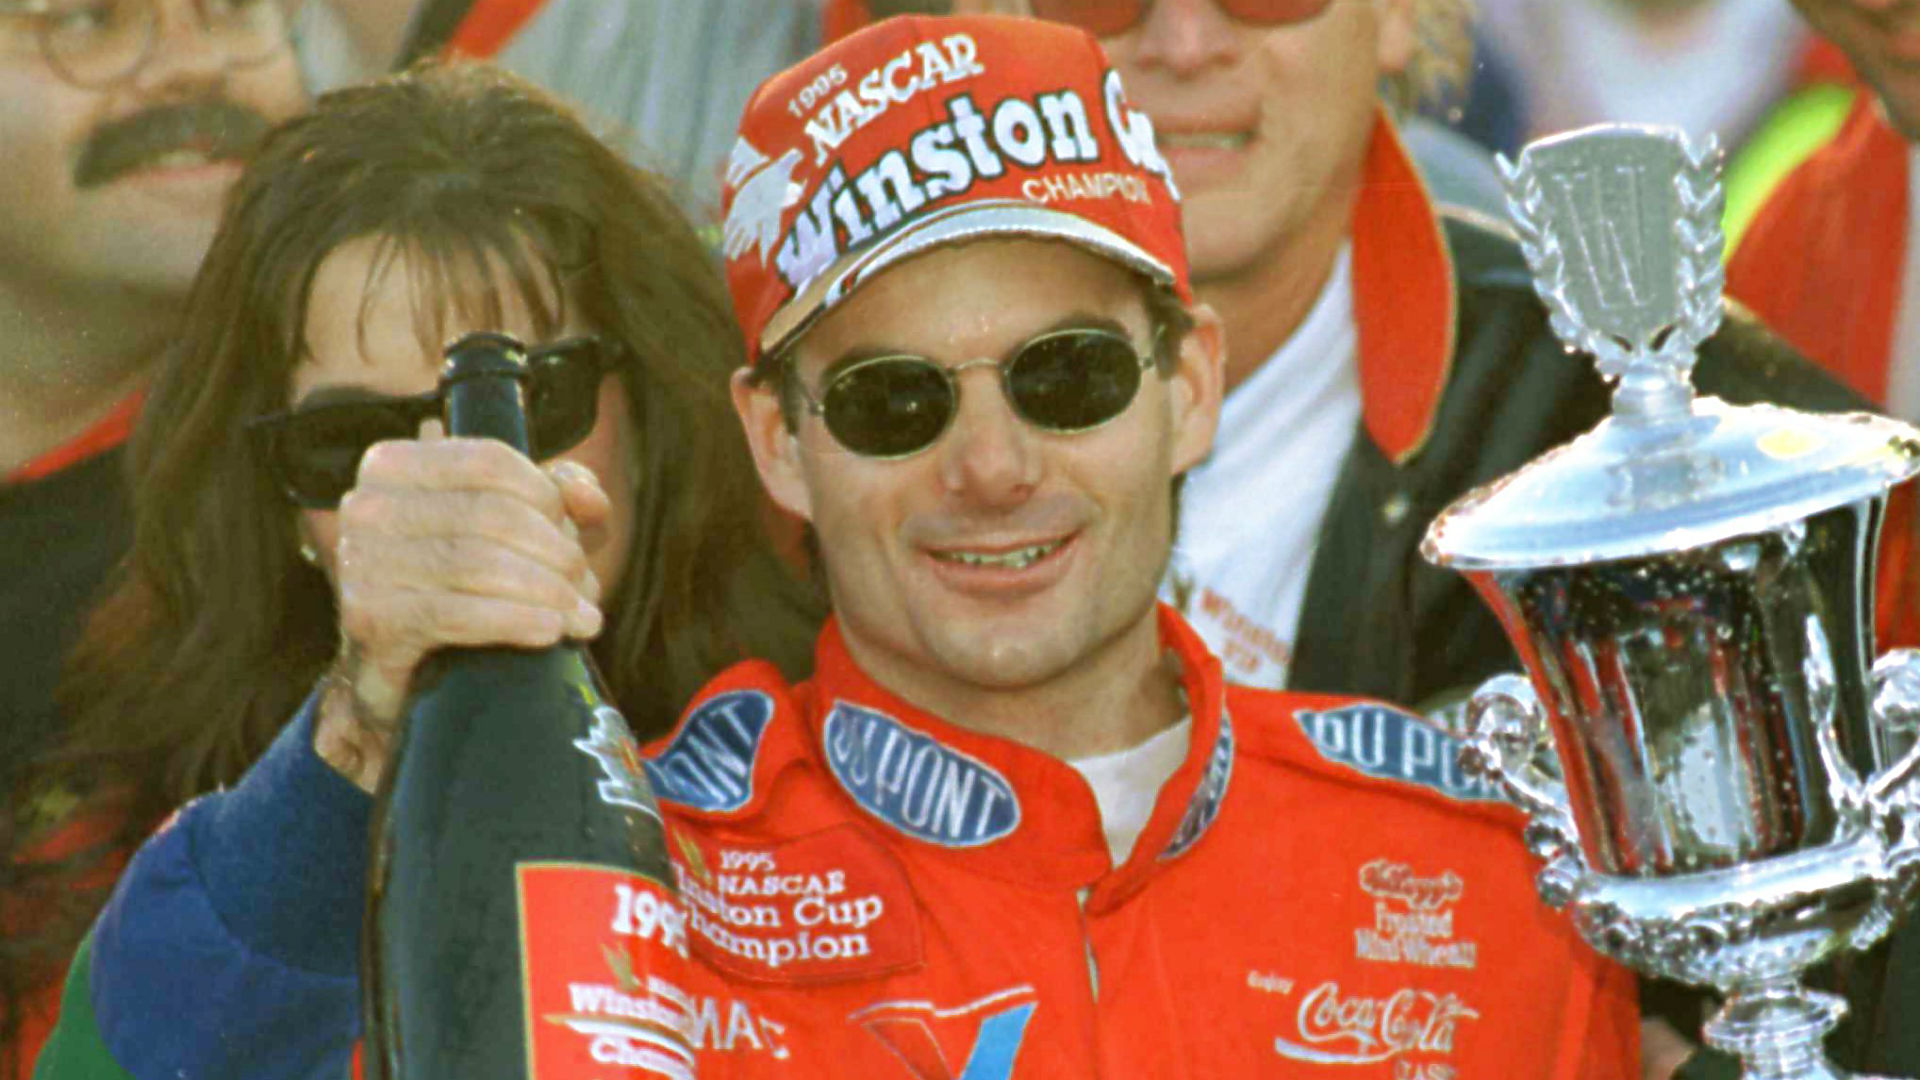 David Letterman to young Jeff Gordon: 'You're just a kid'